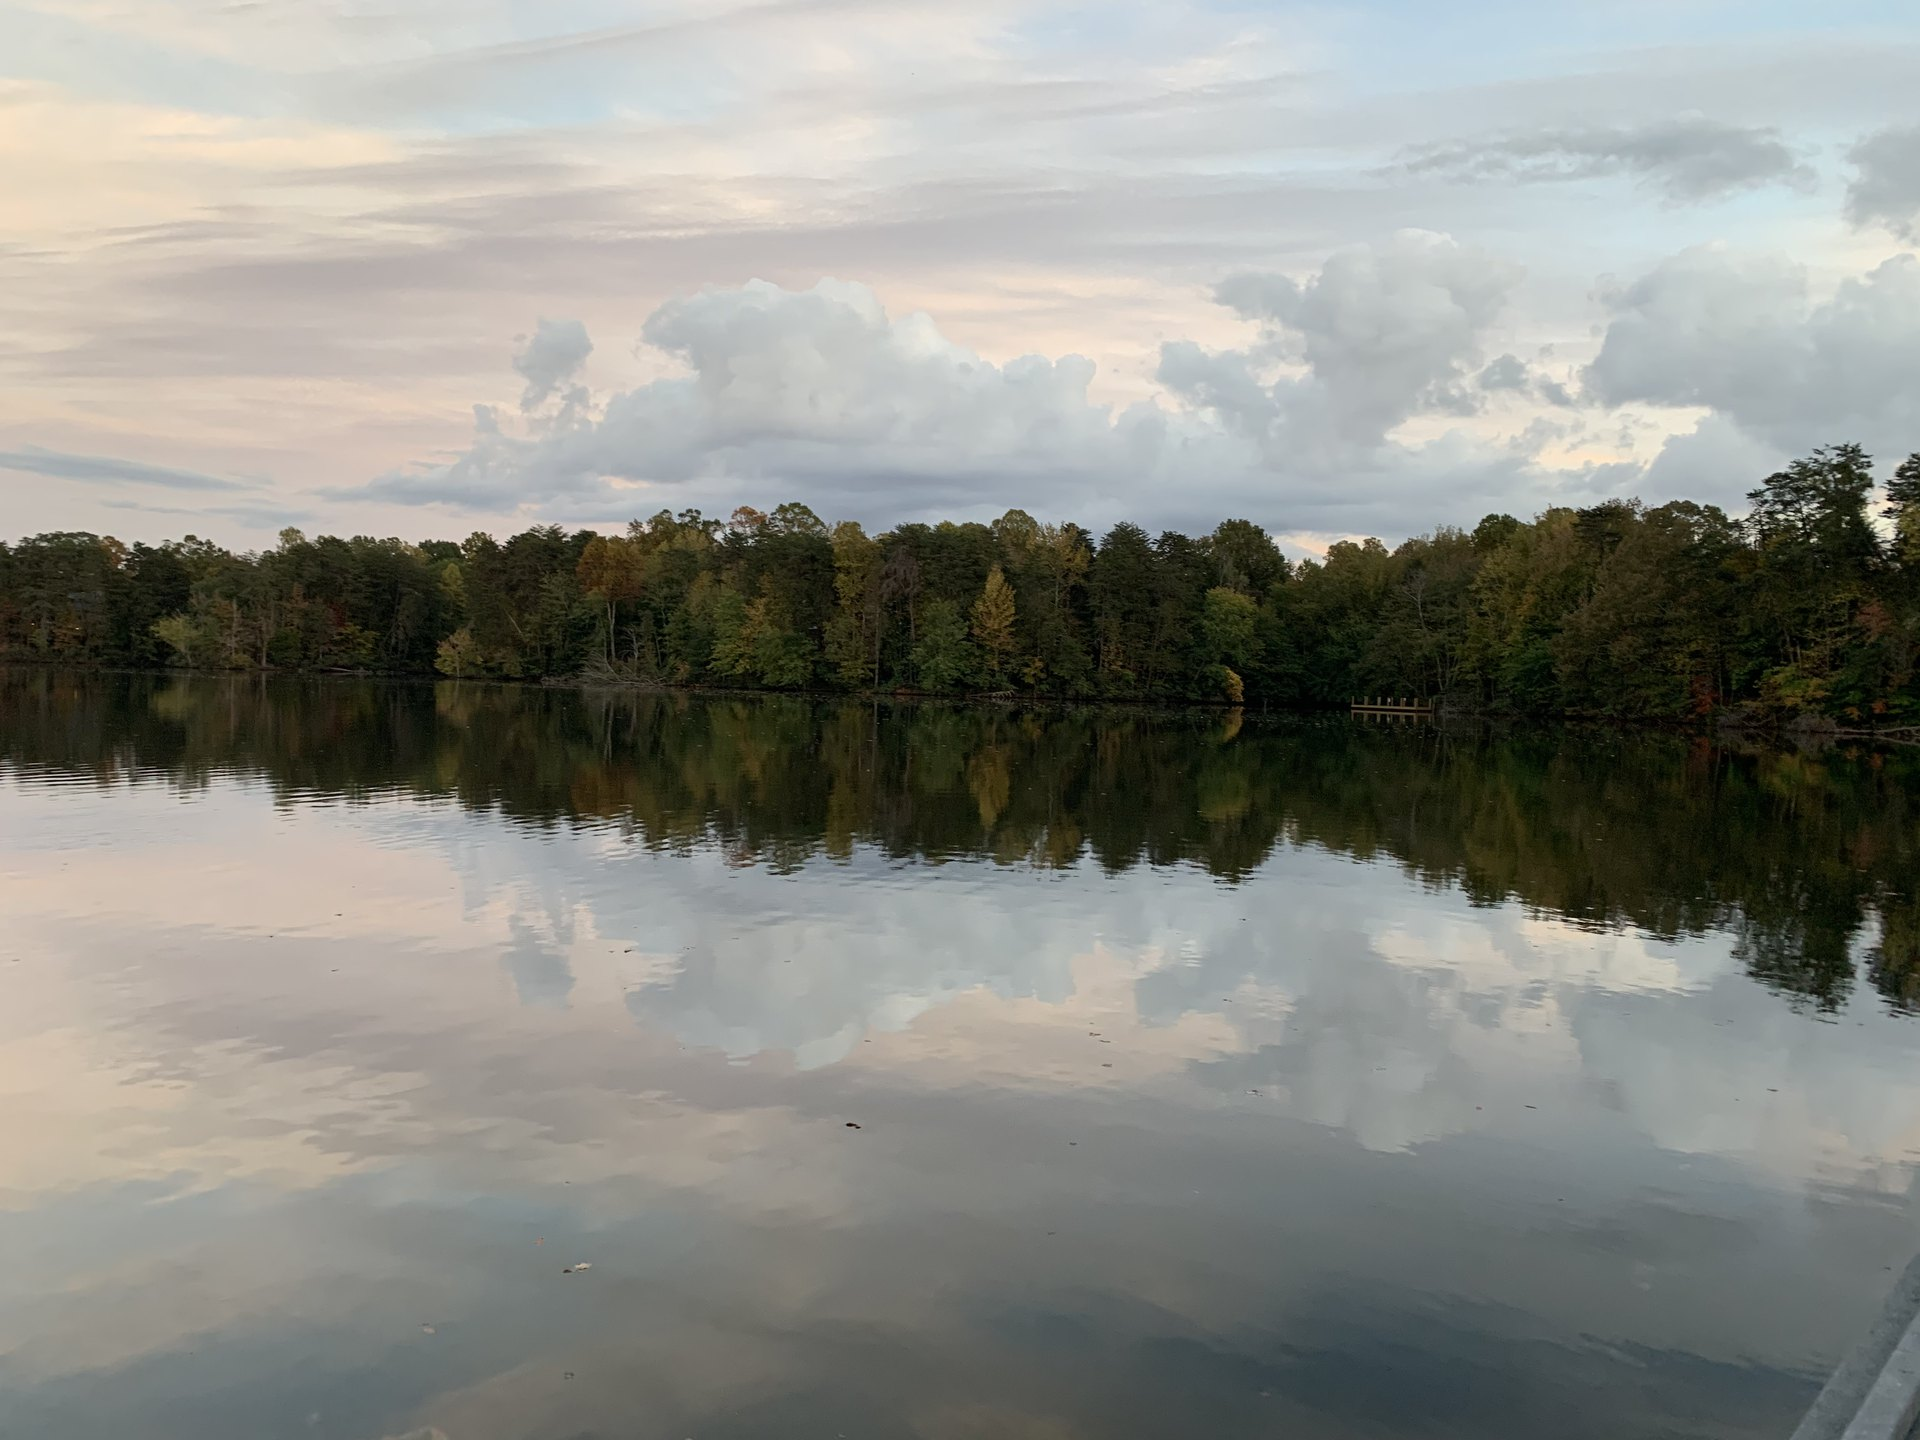 James 4 NASB.  Autumn trees and grey skies with white, fluffy clouds reflecting on a lake.